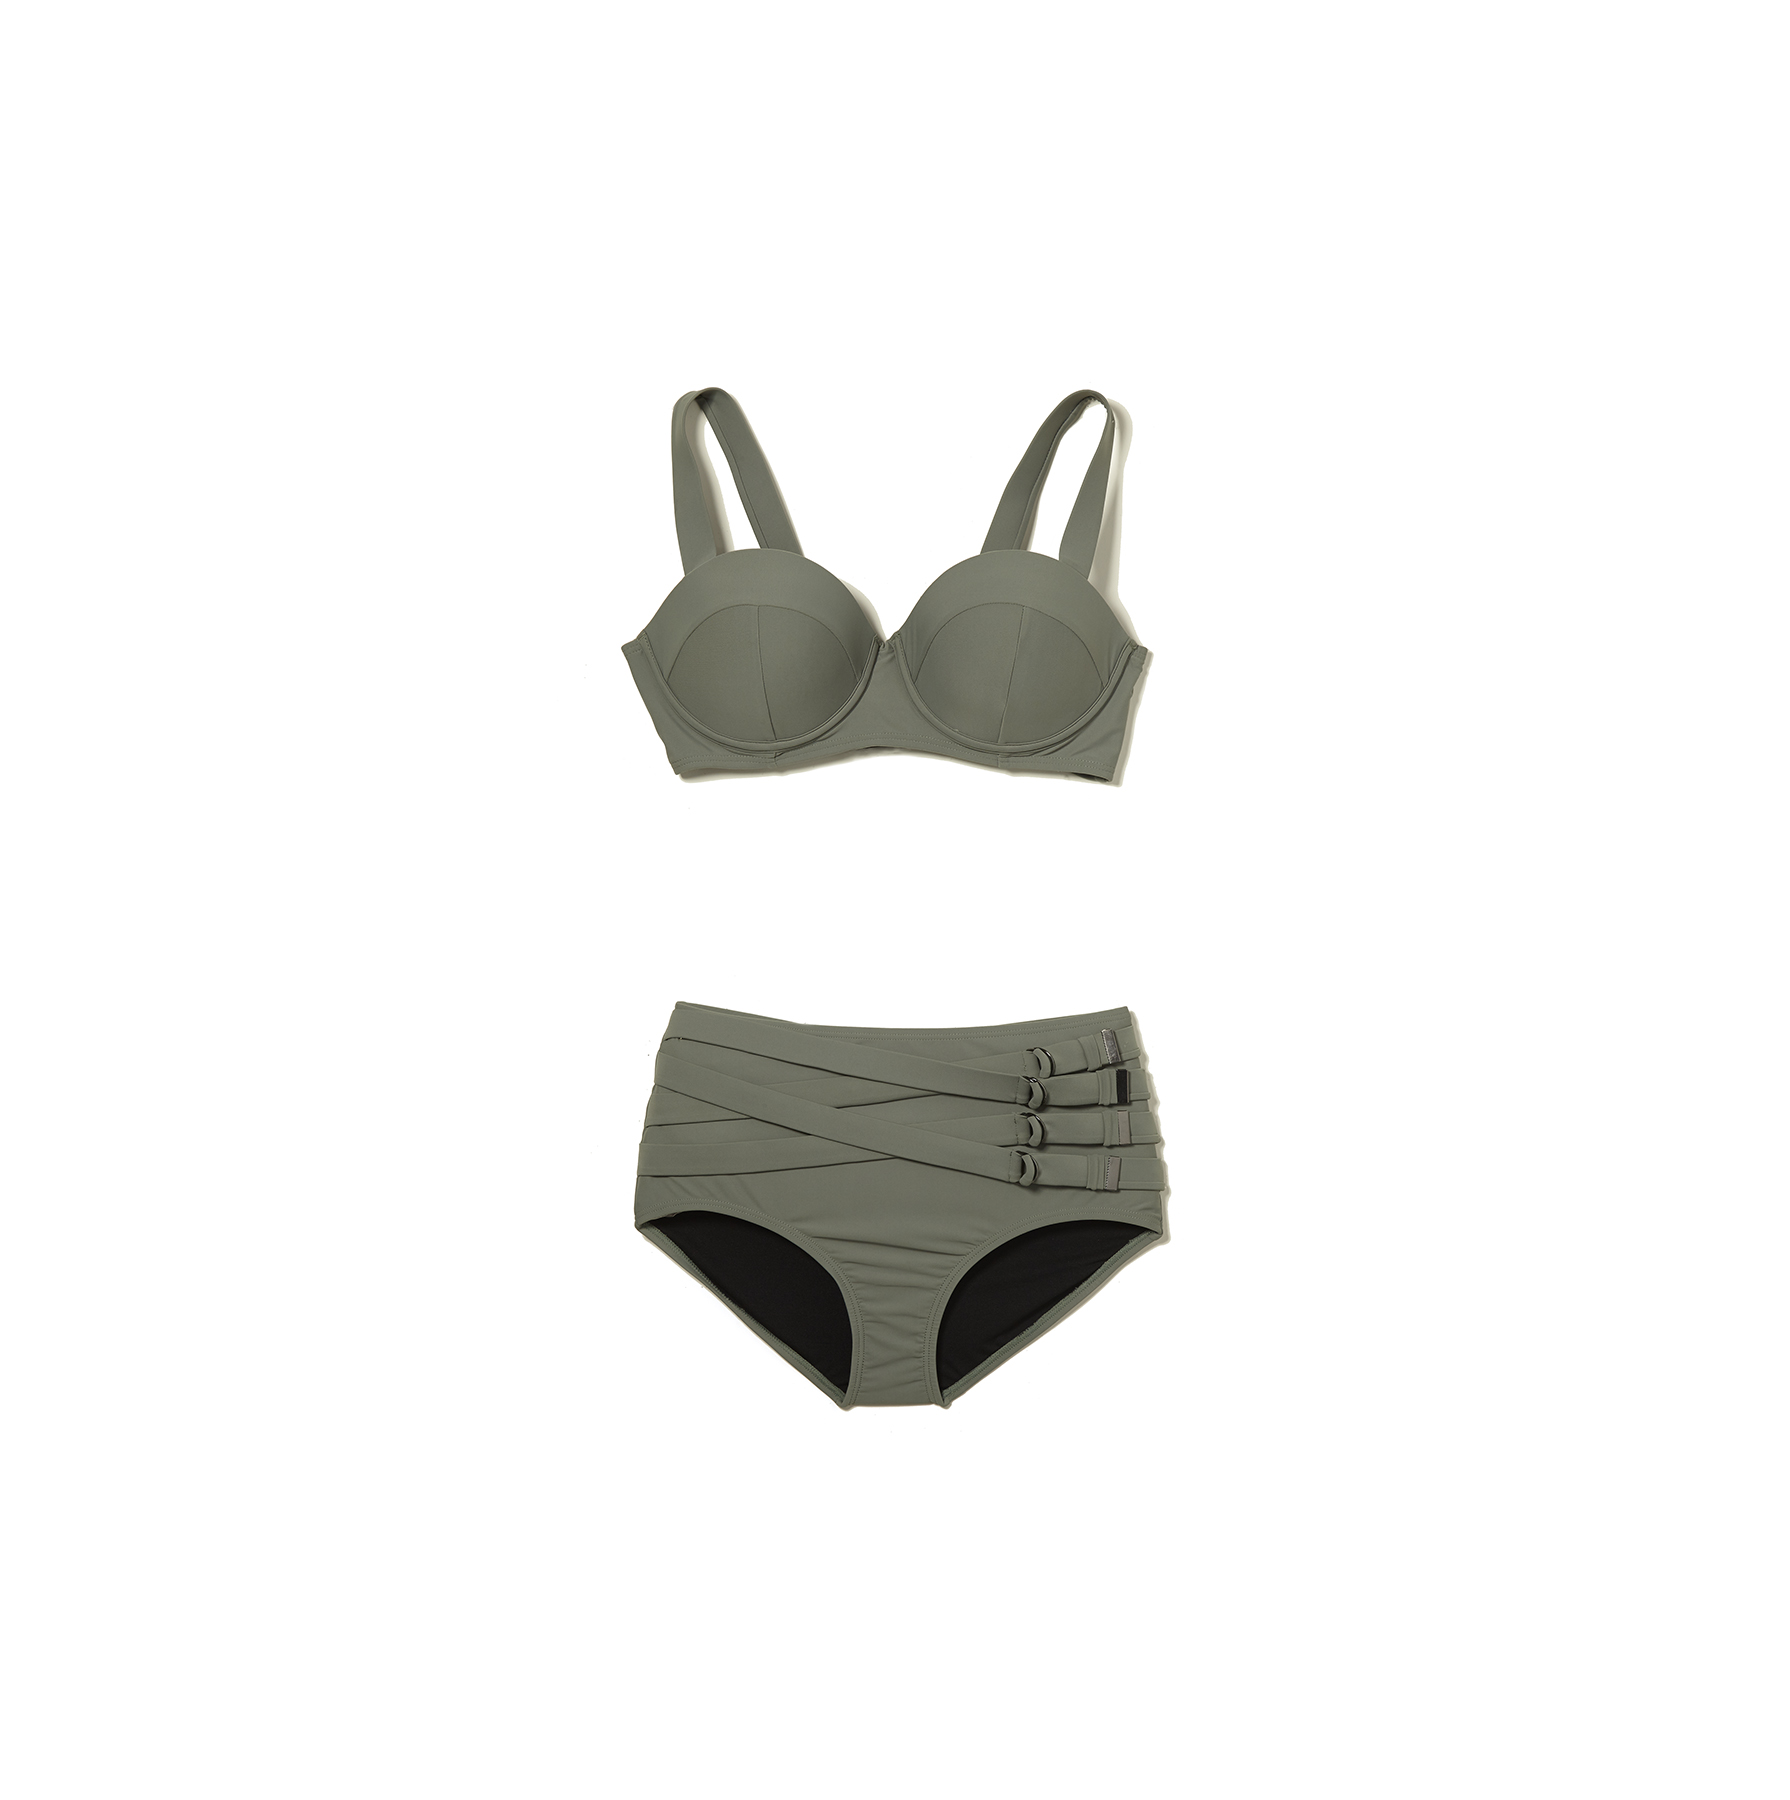 GabiFresh x Swimsuits For All Reflection Convertible Underwire Swimsuit